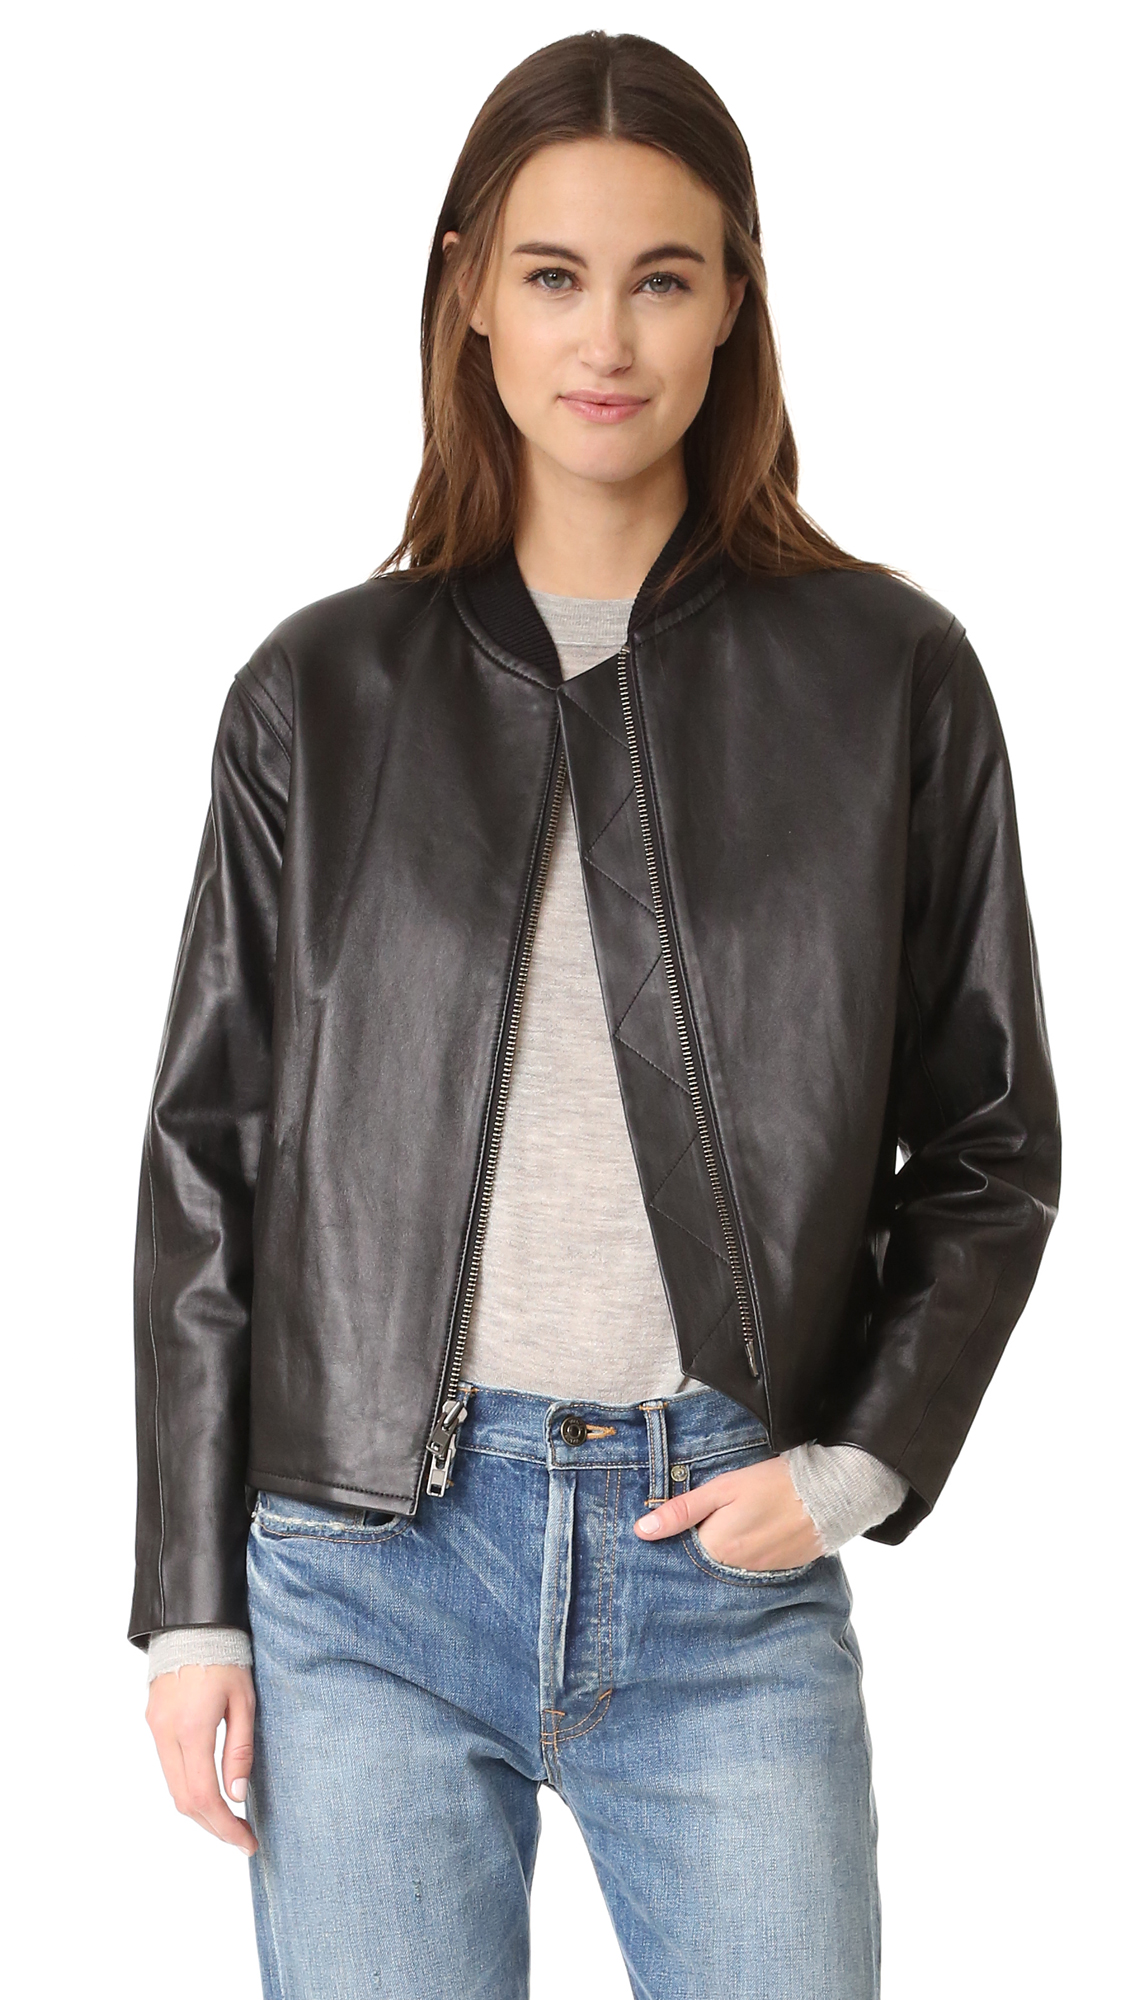 Vince Drop Shoulder Bomber Jacket - Black at Shopbop